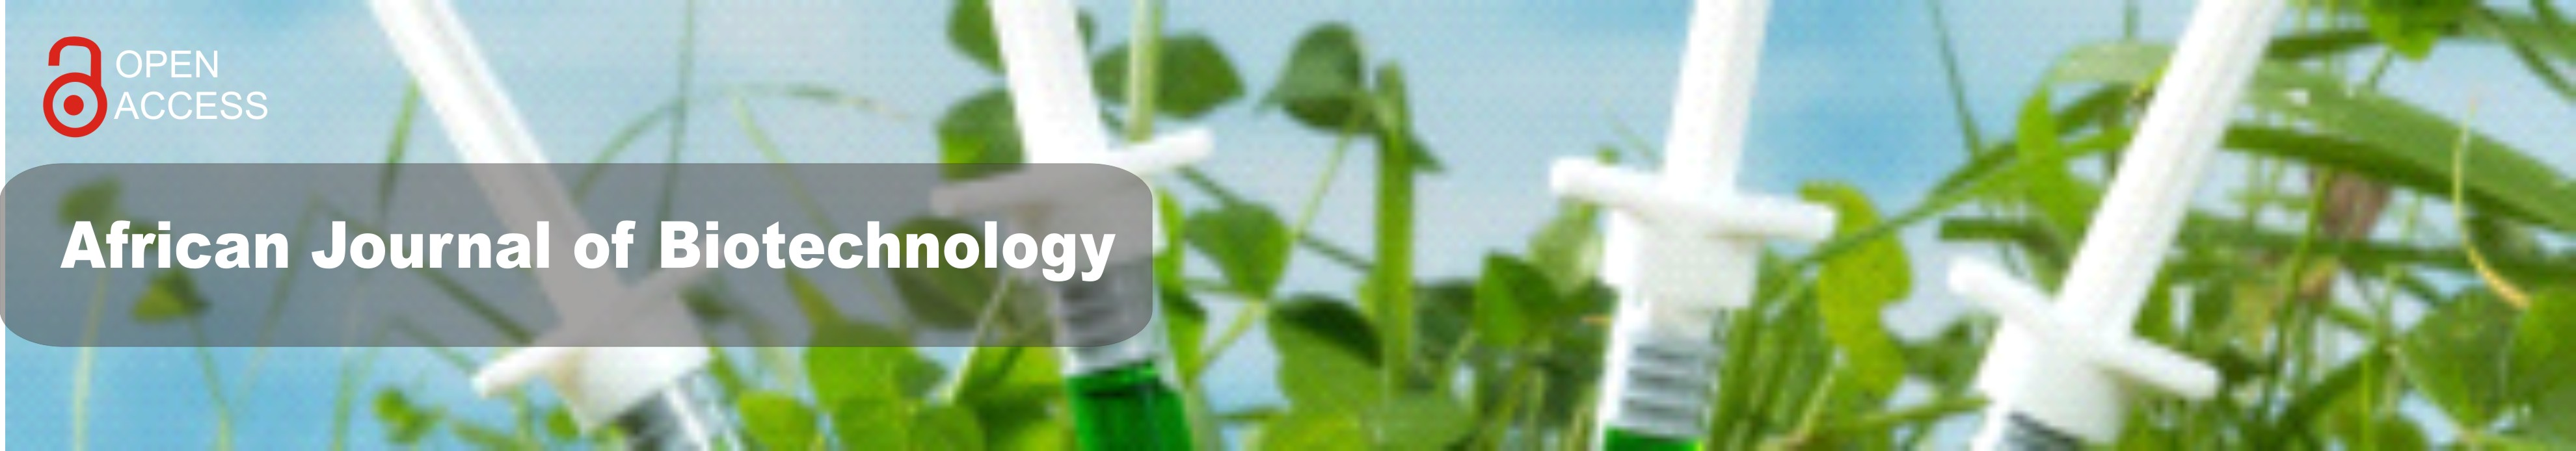 African Journal of Biotechnology